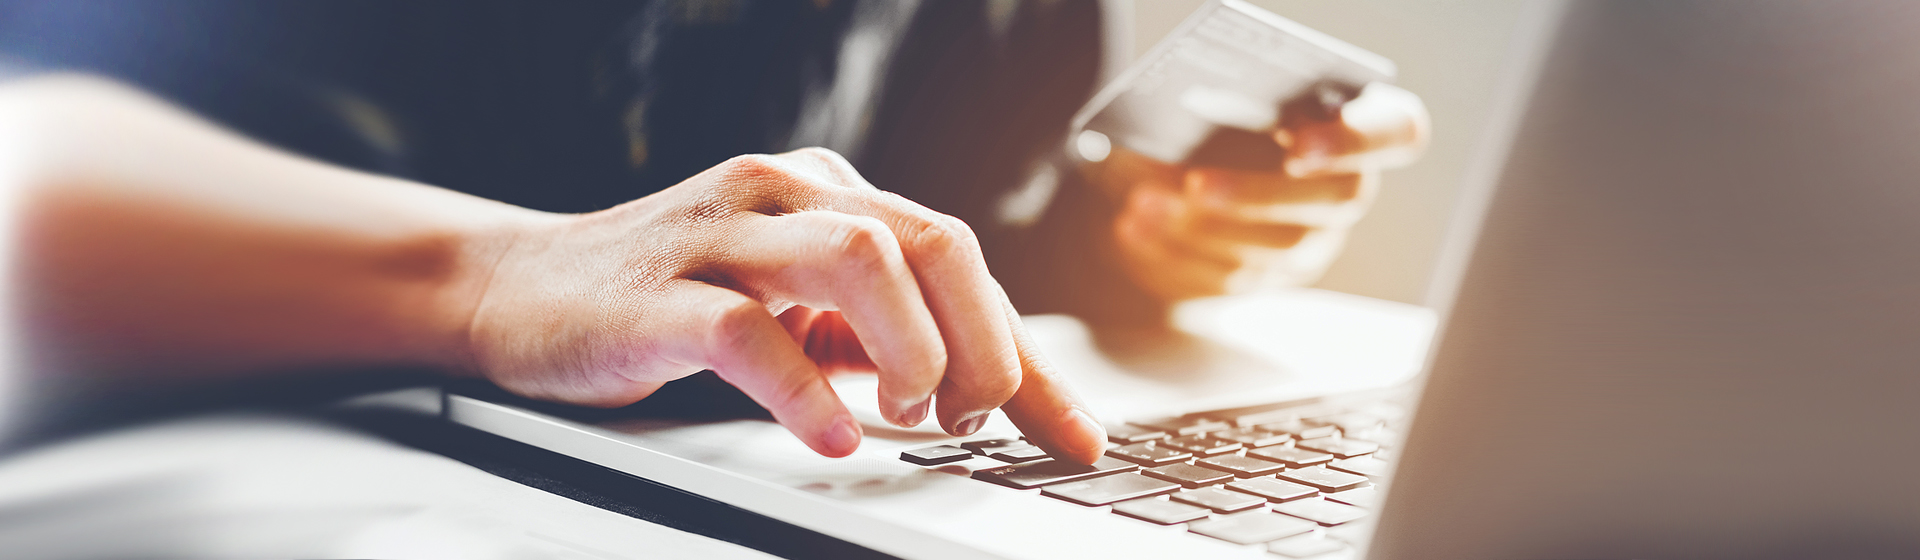 man typing on laptop keyboard and holding credit card